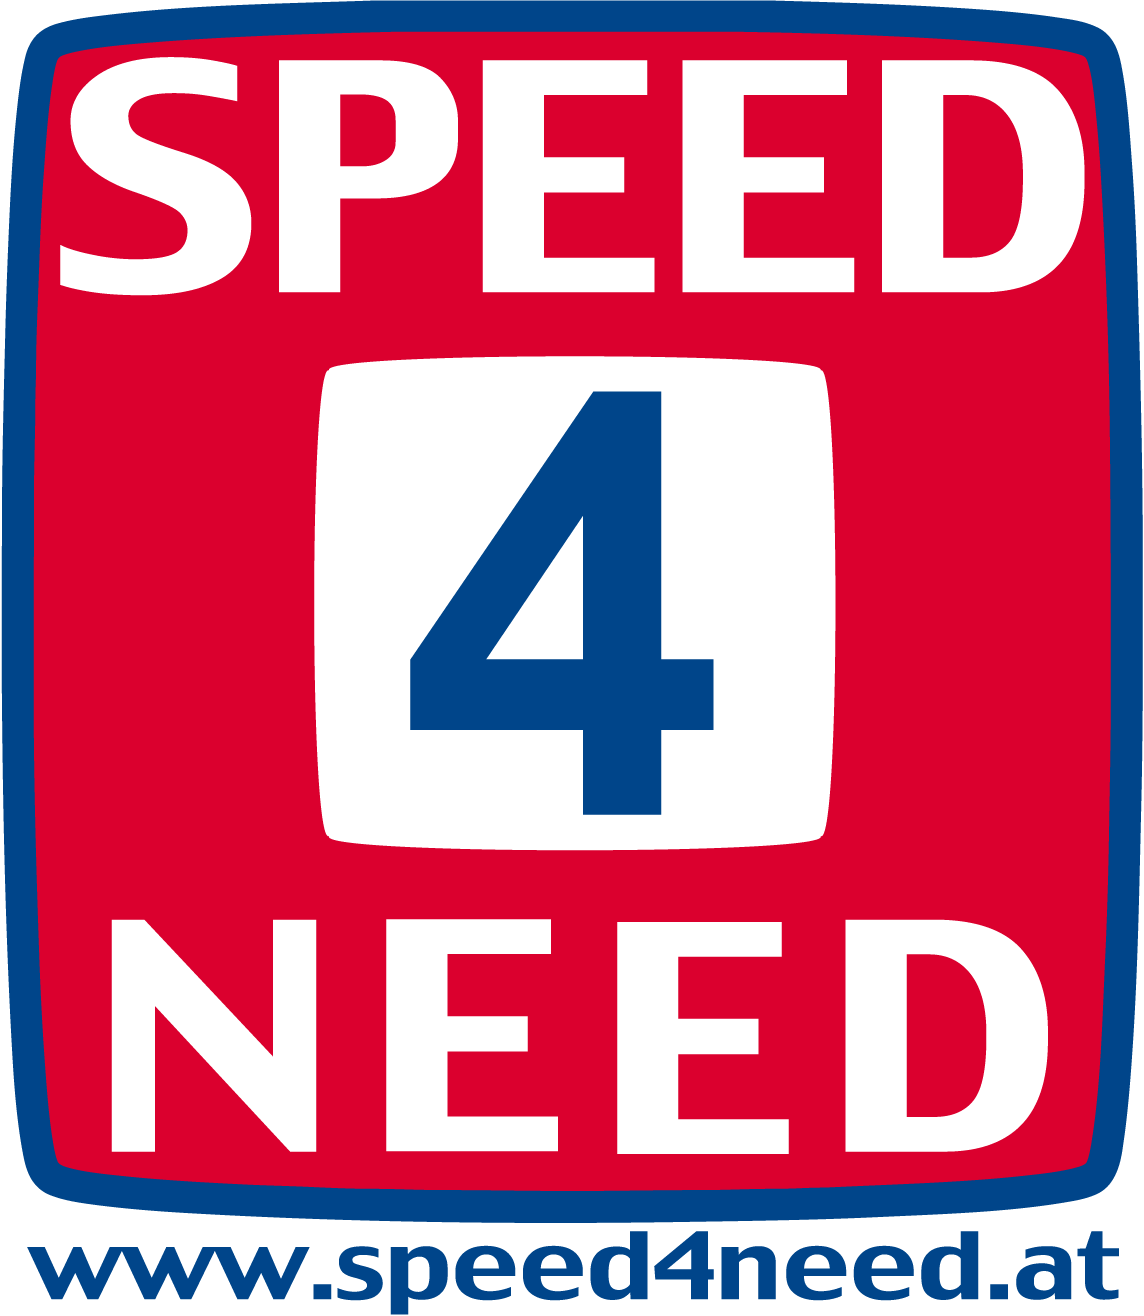 logo speed4need v3 1 304fb